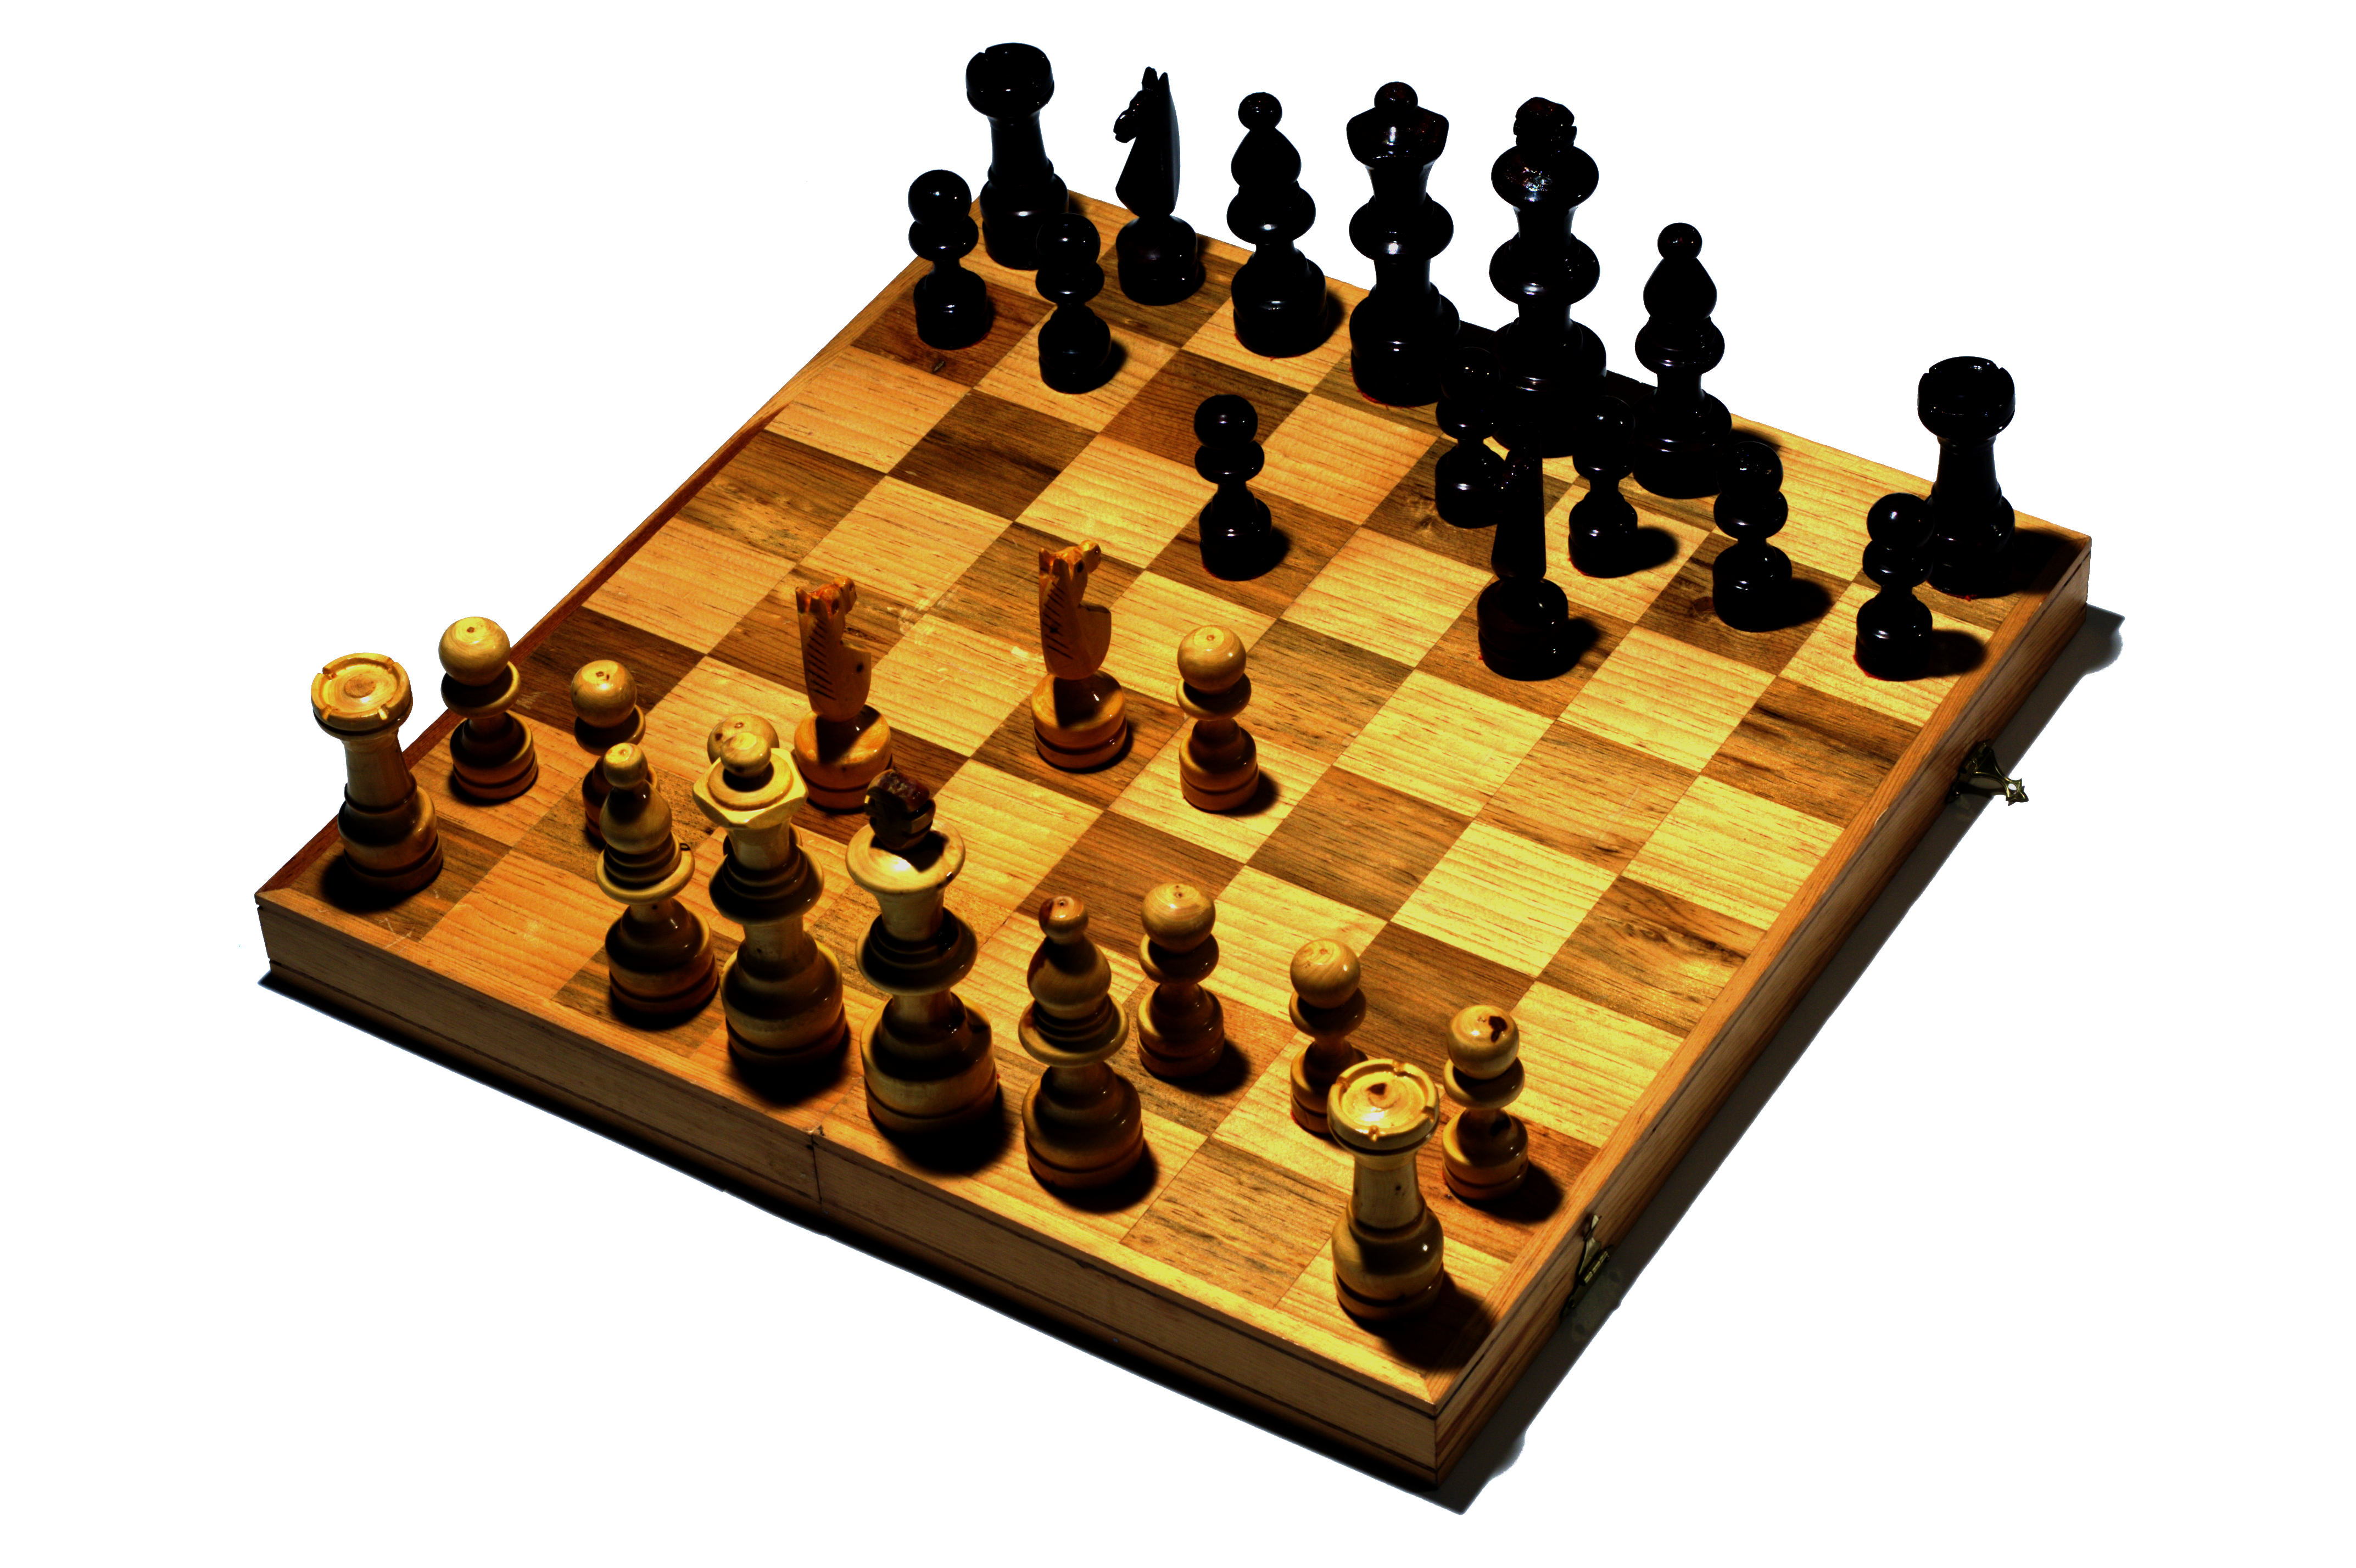 File:Chess-Sicilian-Physical.png - Chess PNG